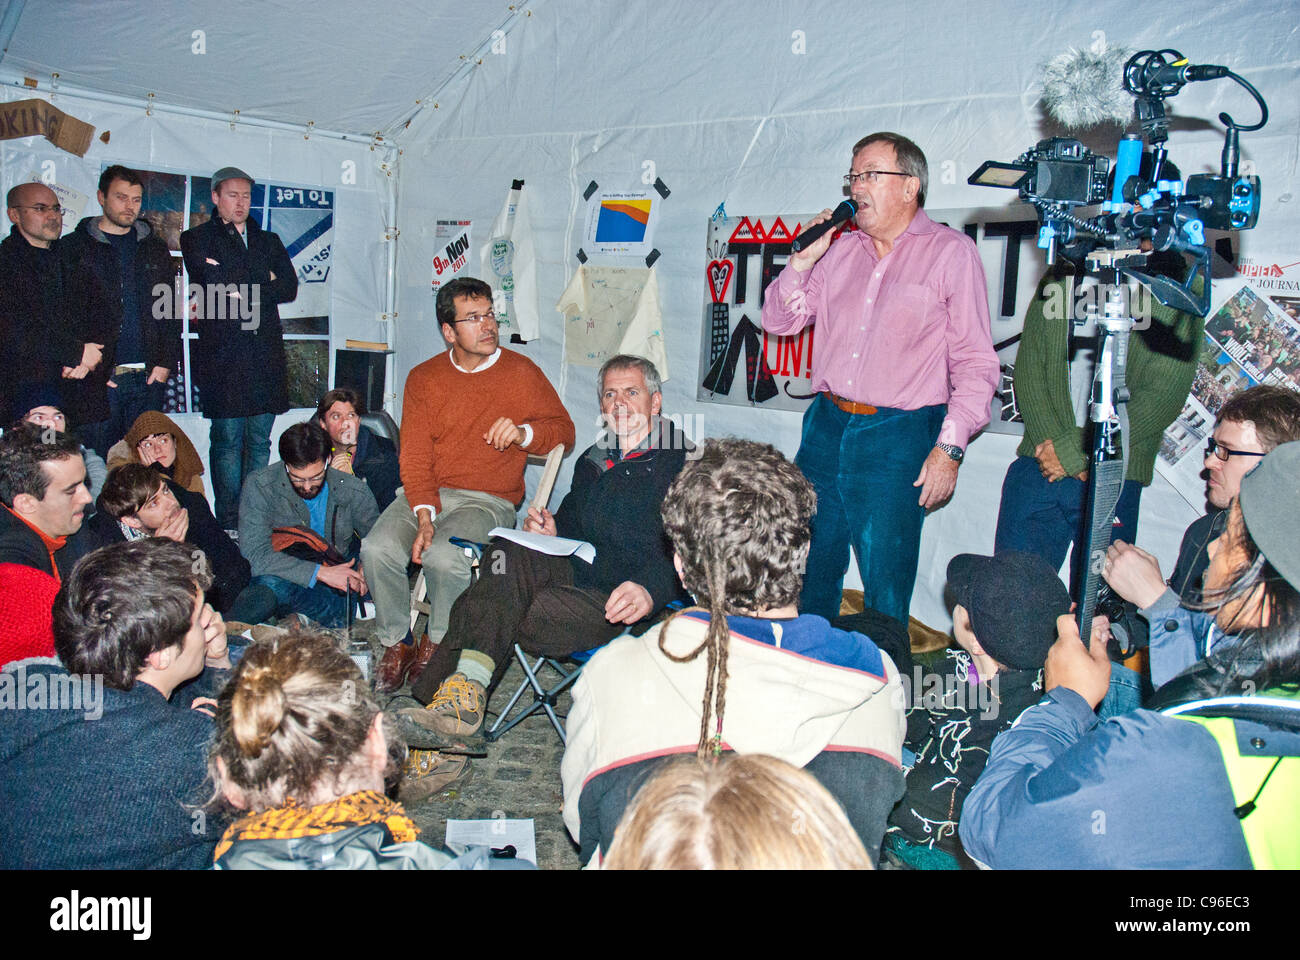 Stuart Fraser, Chairman of the City of London Corporation, George Monbiot and protesters at the Tent City University, - Stock Image